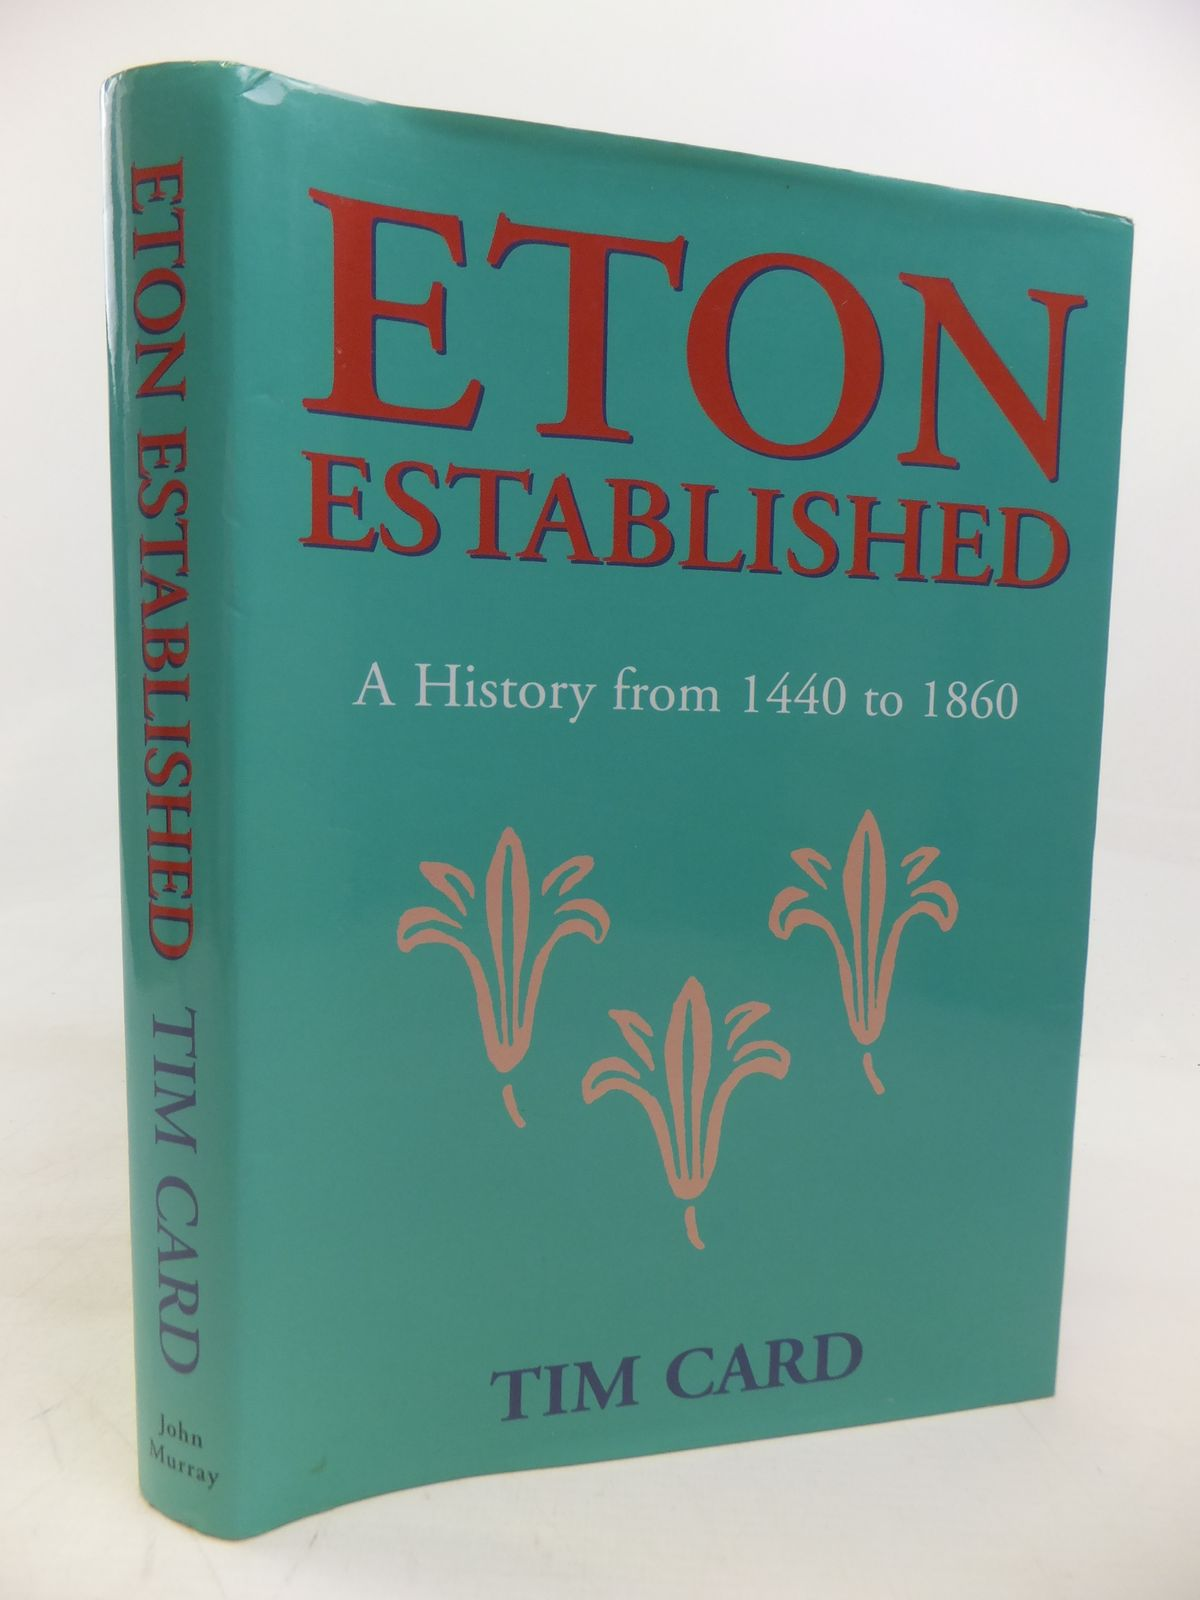 Photo of ETON ESTABLISHED A HISTORY FROM 1440-1860 written by Card, Tim published by John Murray (STOCK CODE: 1810336)  for sale by Stella & Rose's Books